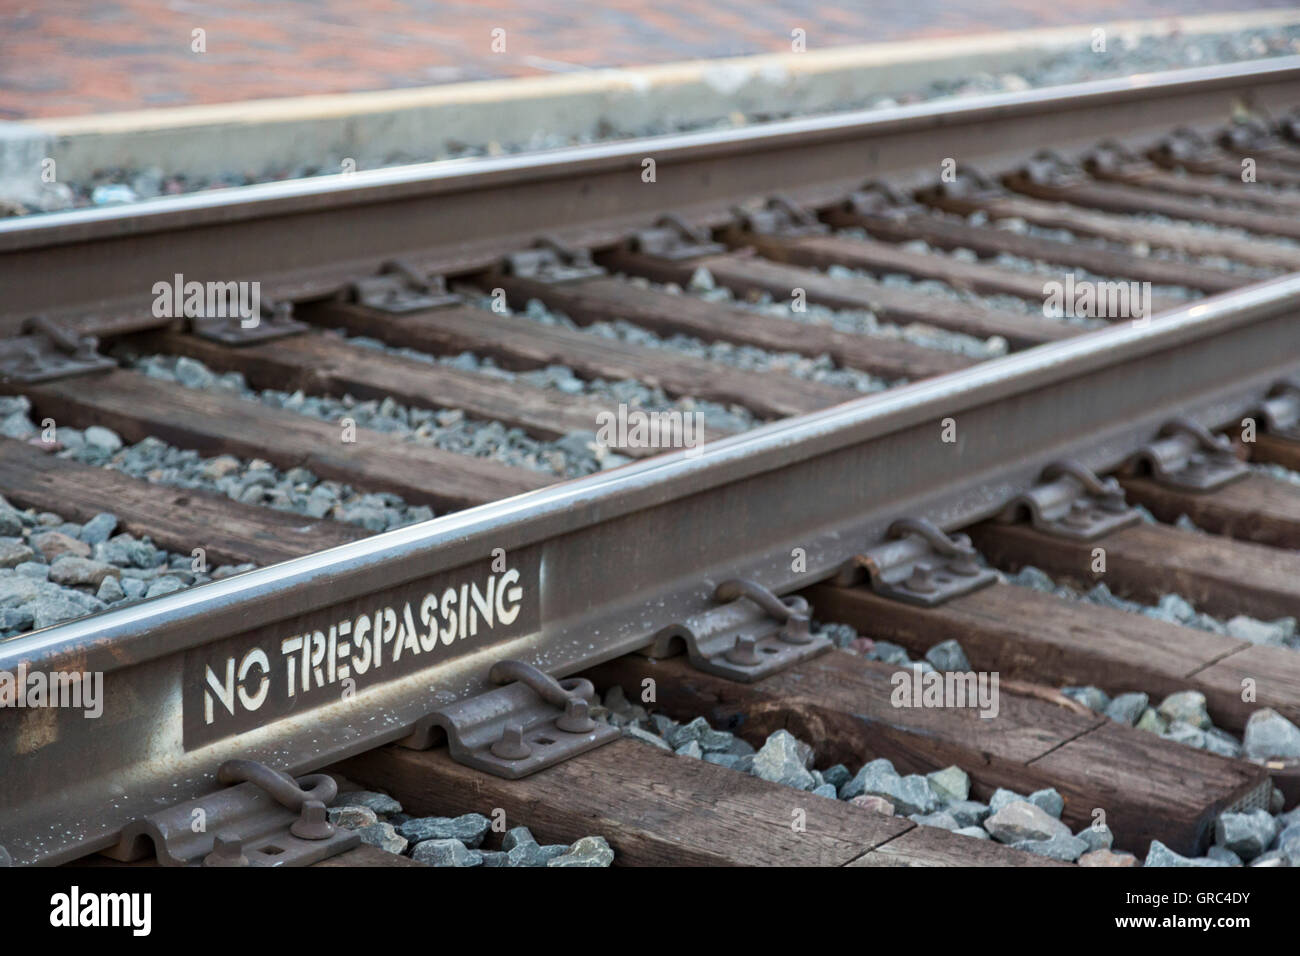 Flagstaff, Arizona - A stenciled 'No Trespassing' sign on the busy BNSF railroad tracks in downtown Flagstaff. - Stock Image